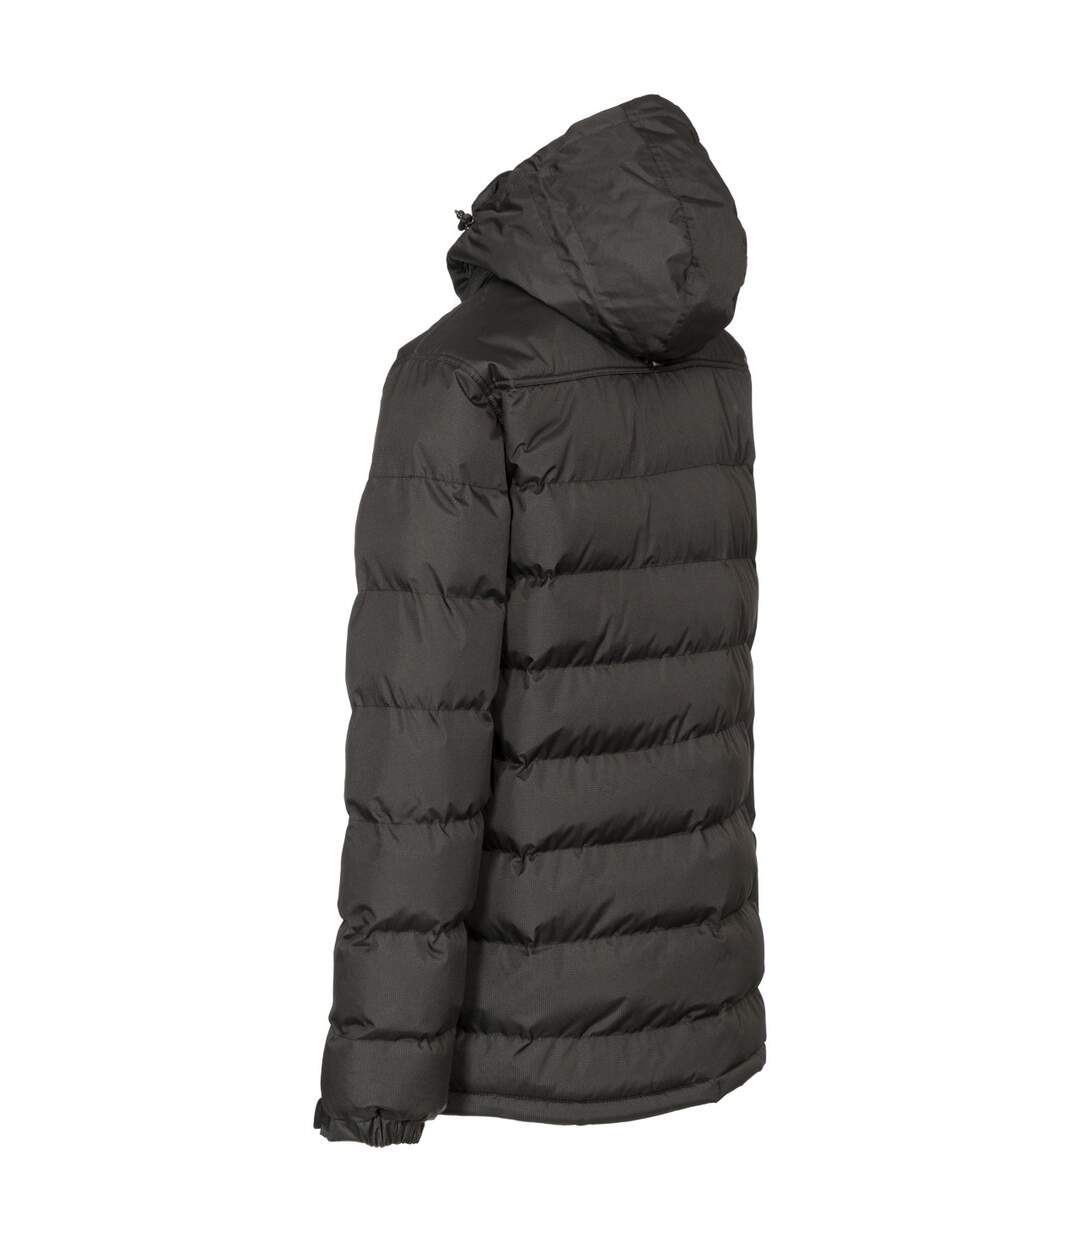 Trespass Mens Specter Waterproof Padded Jacket (Black) - UTTP4367